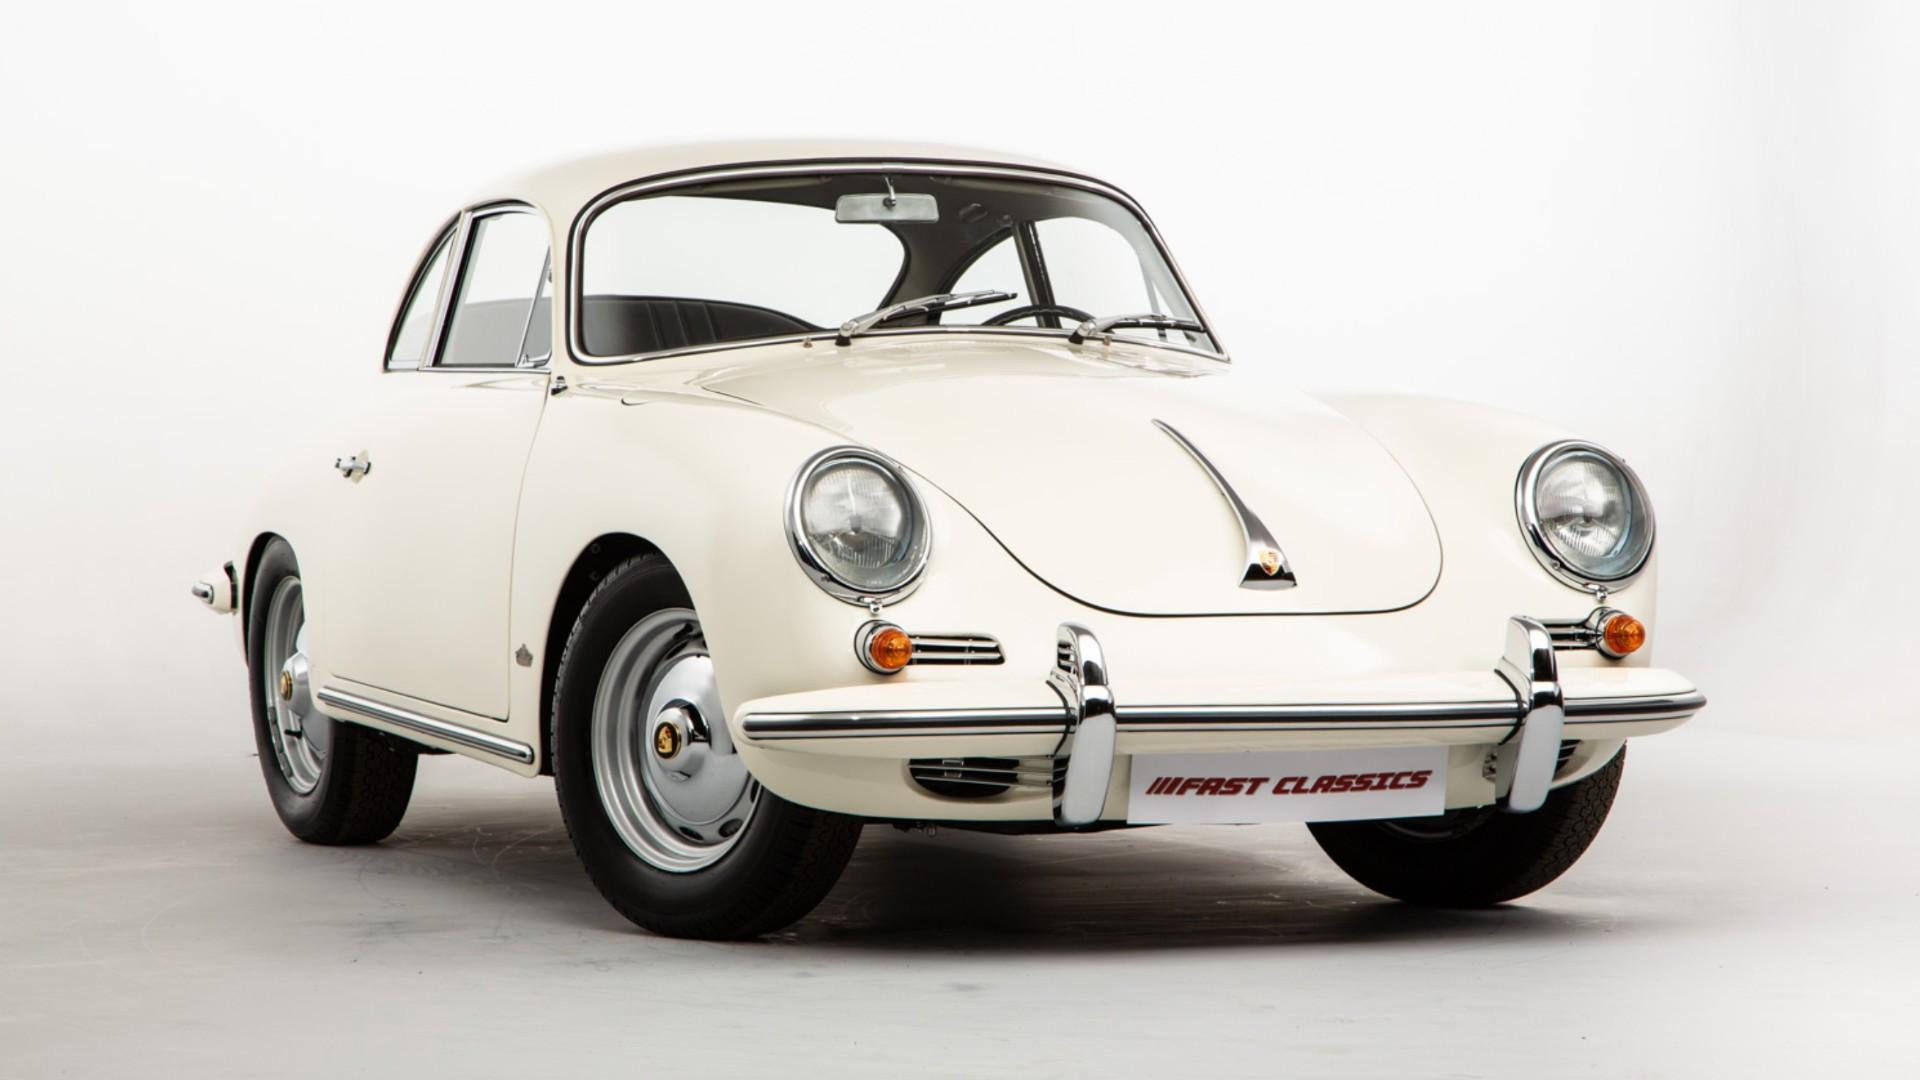 Step back in time with this pristine Porsche 356